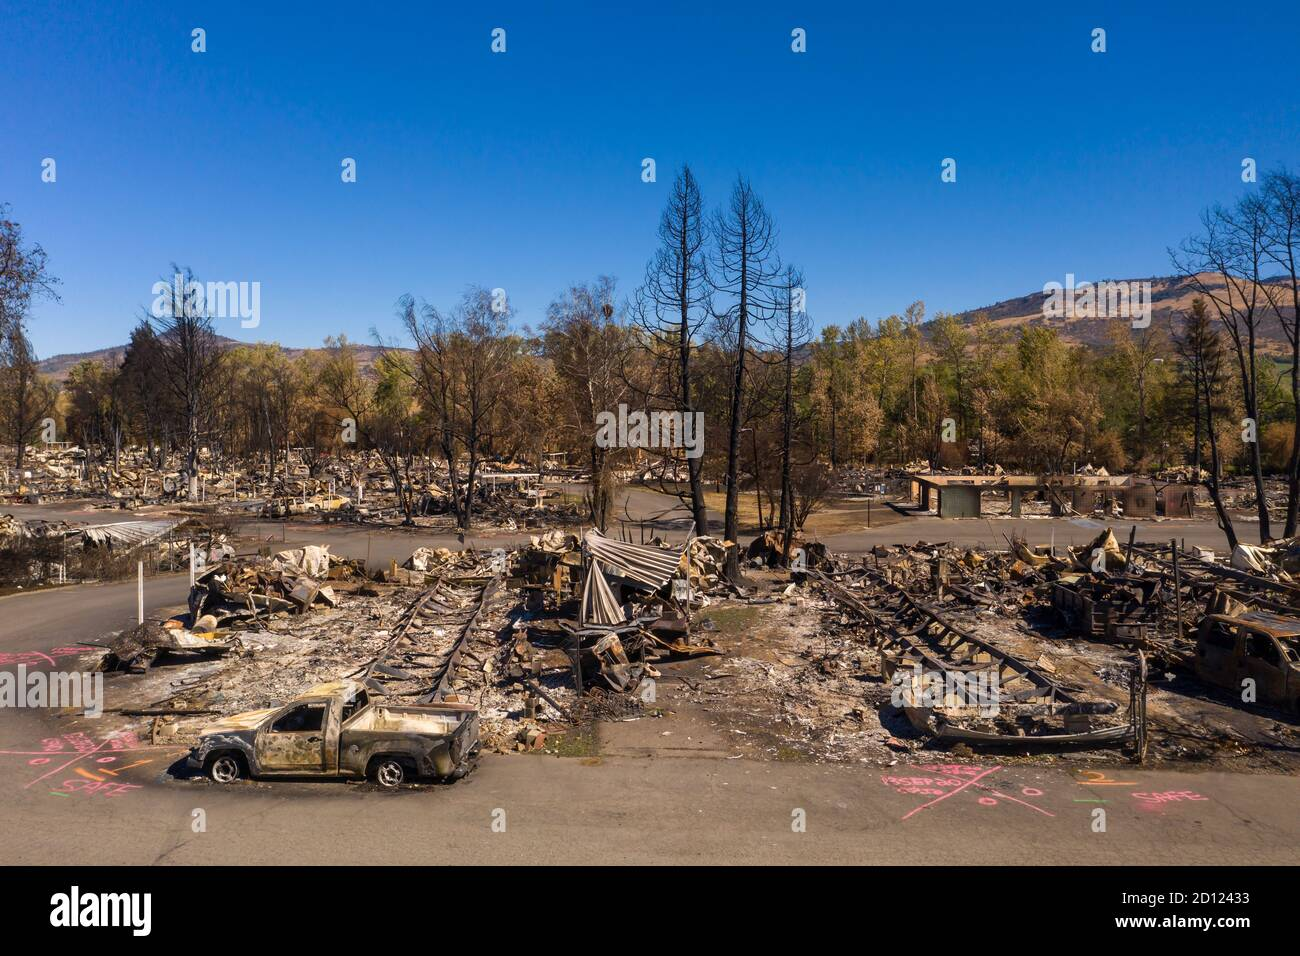 Burned homes and cars caused by Southern Oregon Almeda Fire Stock Photo